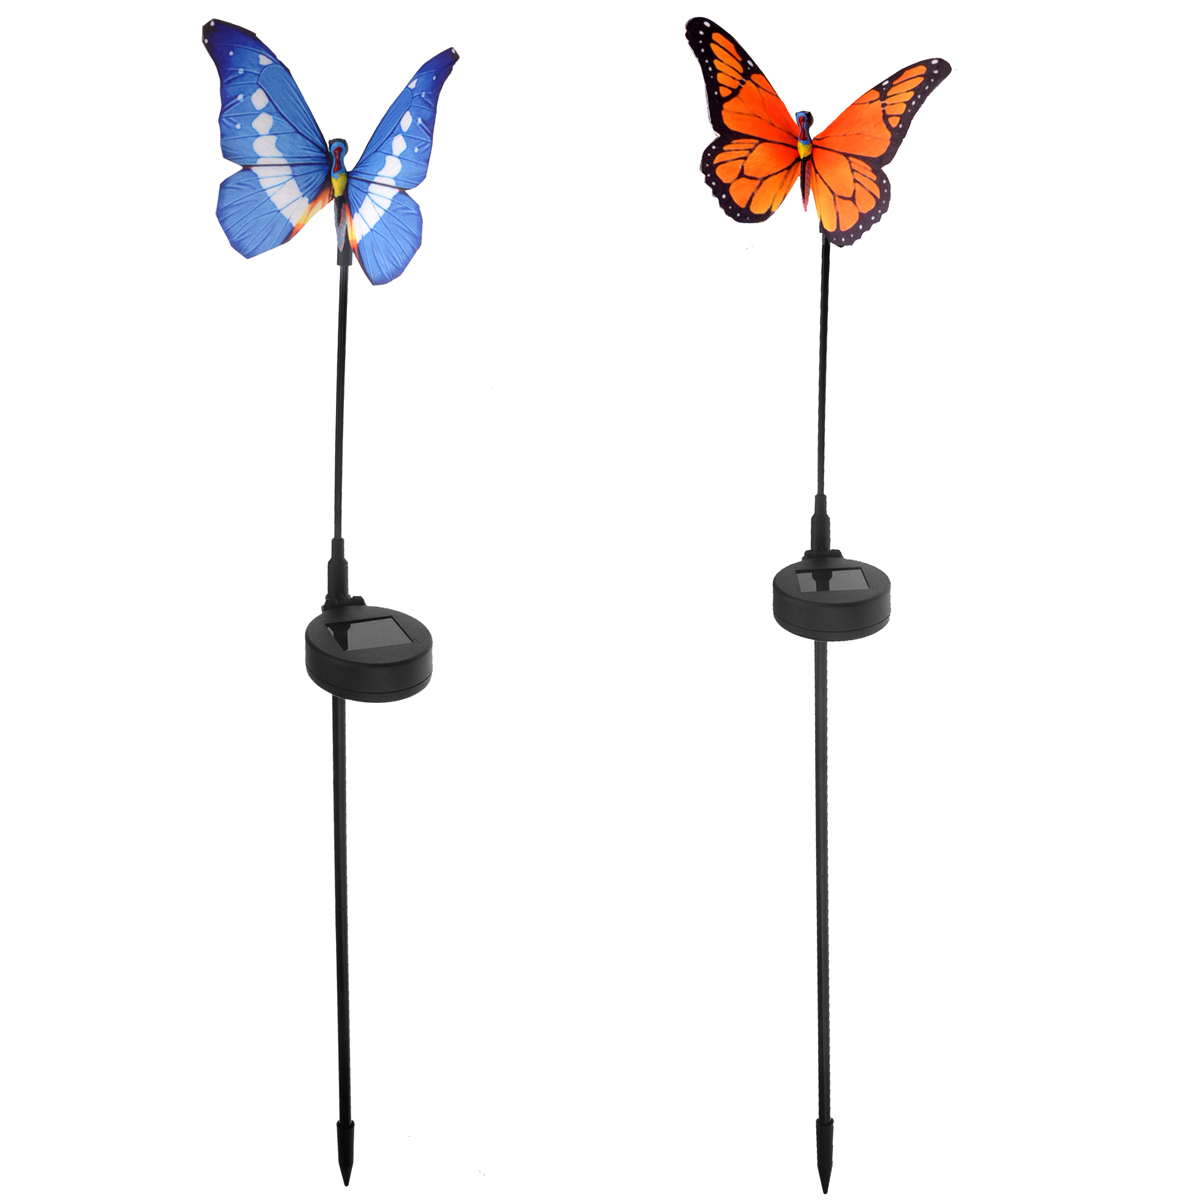 2pcs Waterproof Solar Power RGB Color-changing LED Fiber Optic Butterfly Lights LED Garden Lamps Solar Garden Lawn Lamp(China (Mainland))